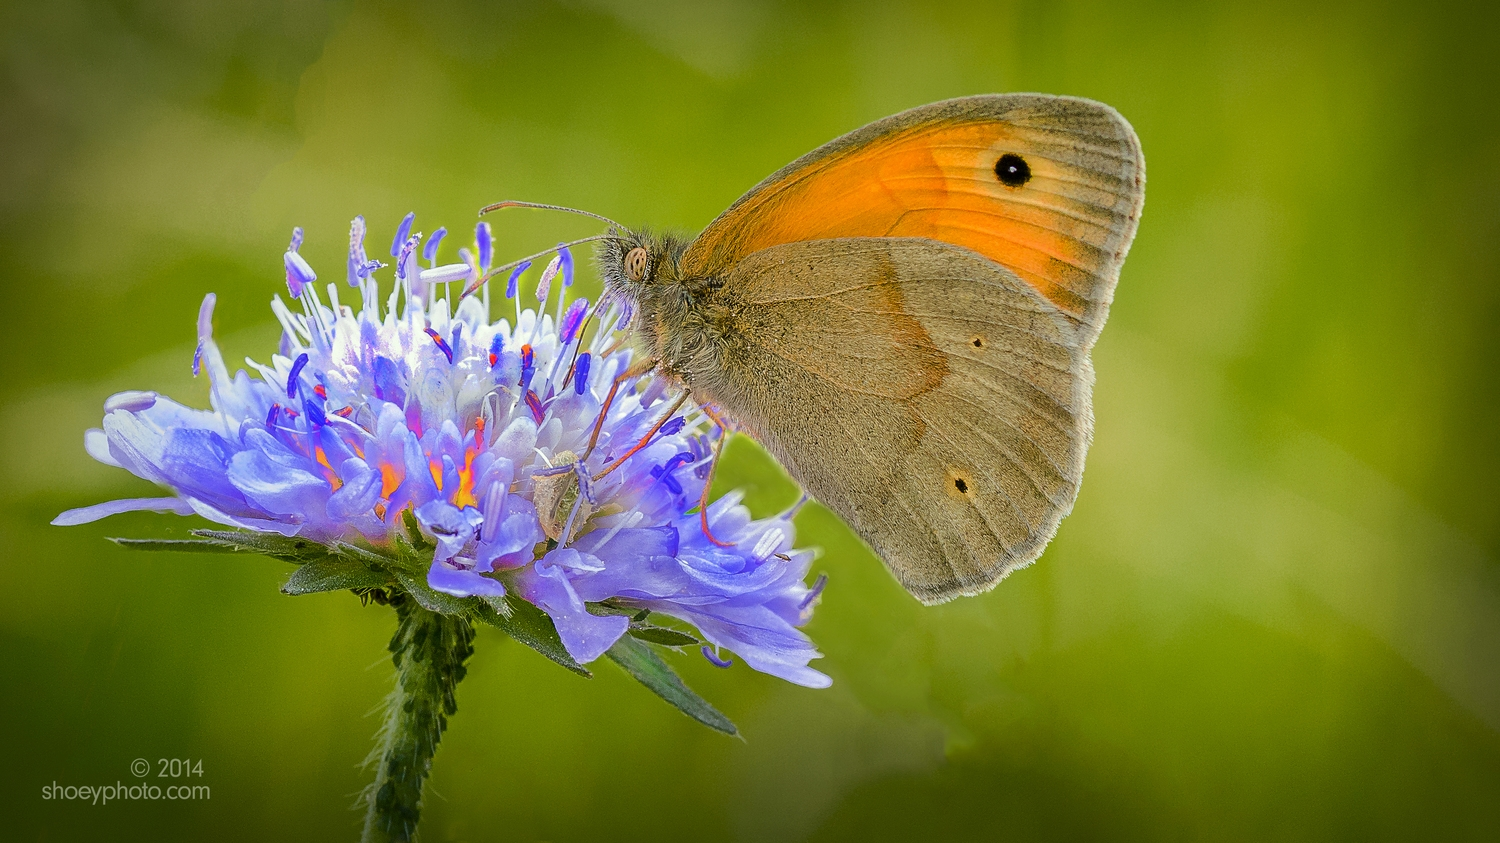 The Meadow Brown Butterfly